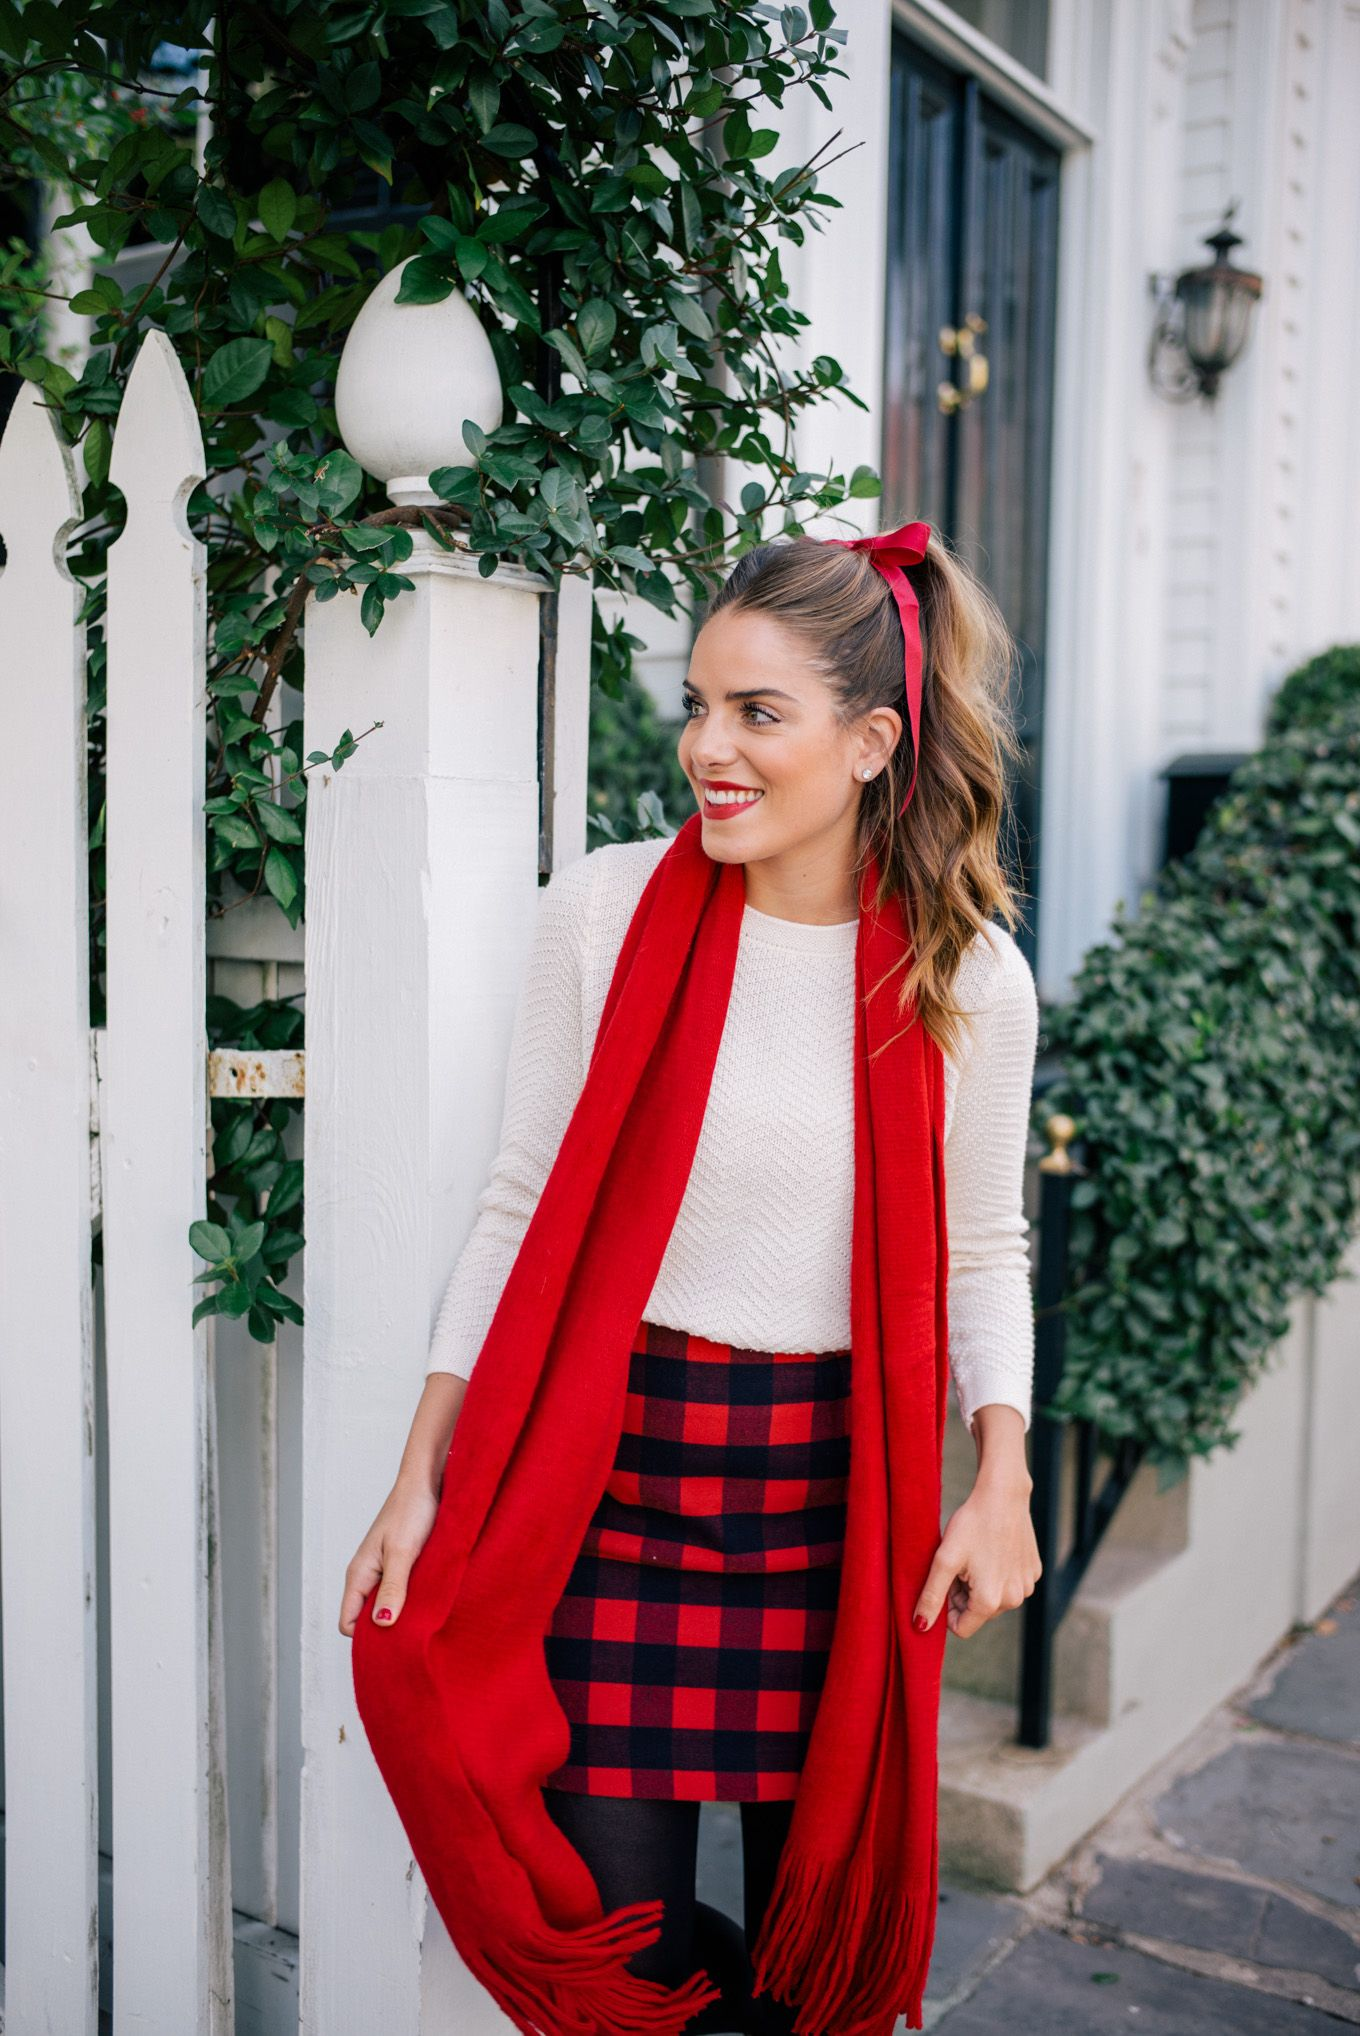 Holiday Red | My Style | Pinterest | Fashion, Holiday fashion and ...